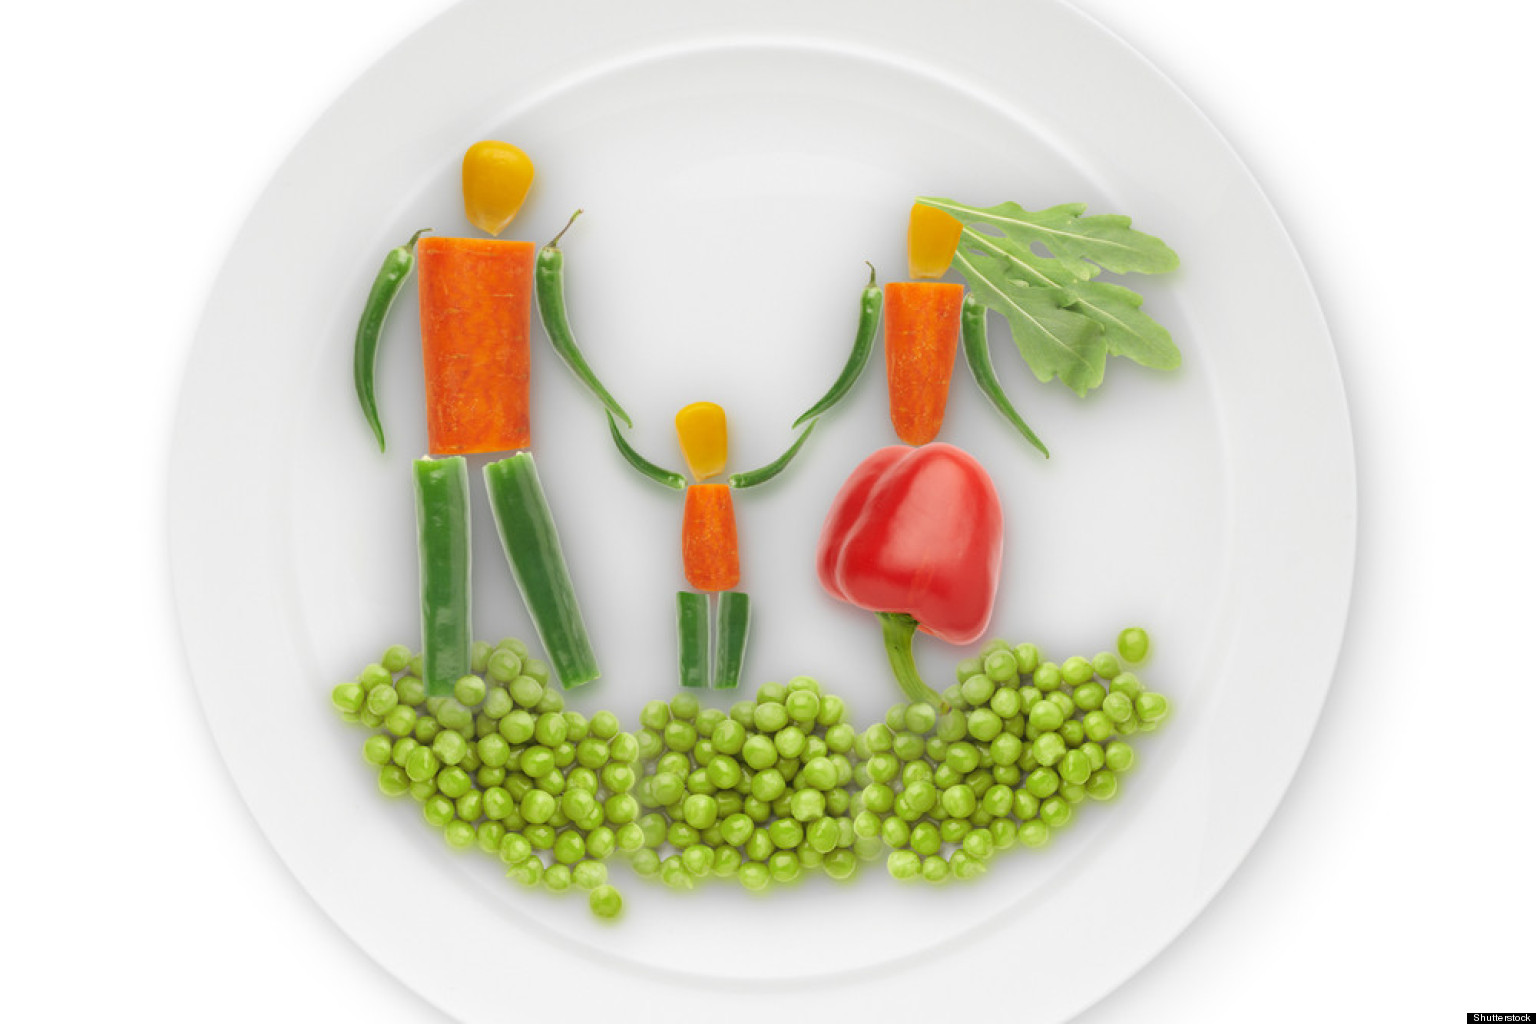 o-VEGETARIAN-DIET-facebook.jpg